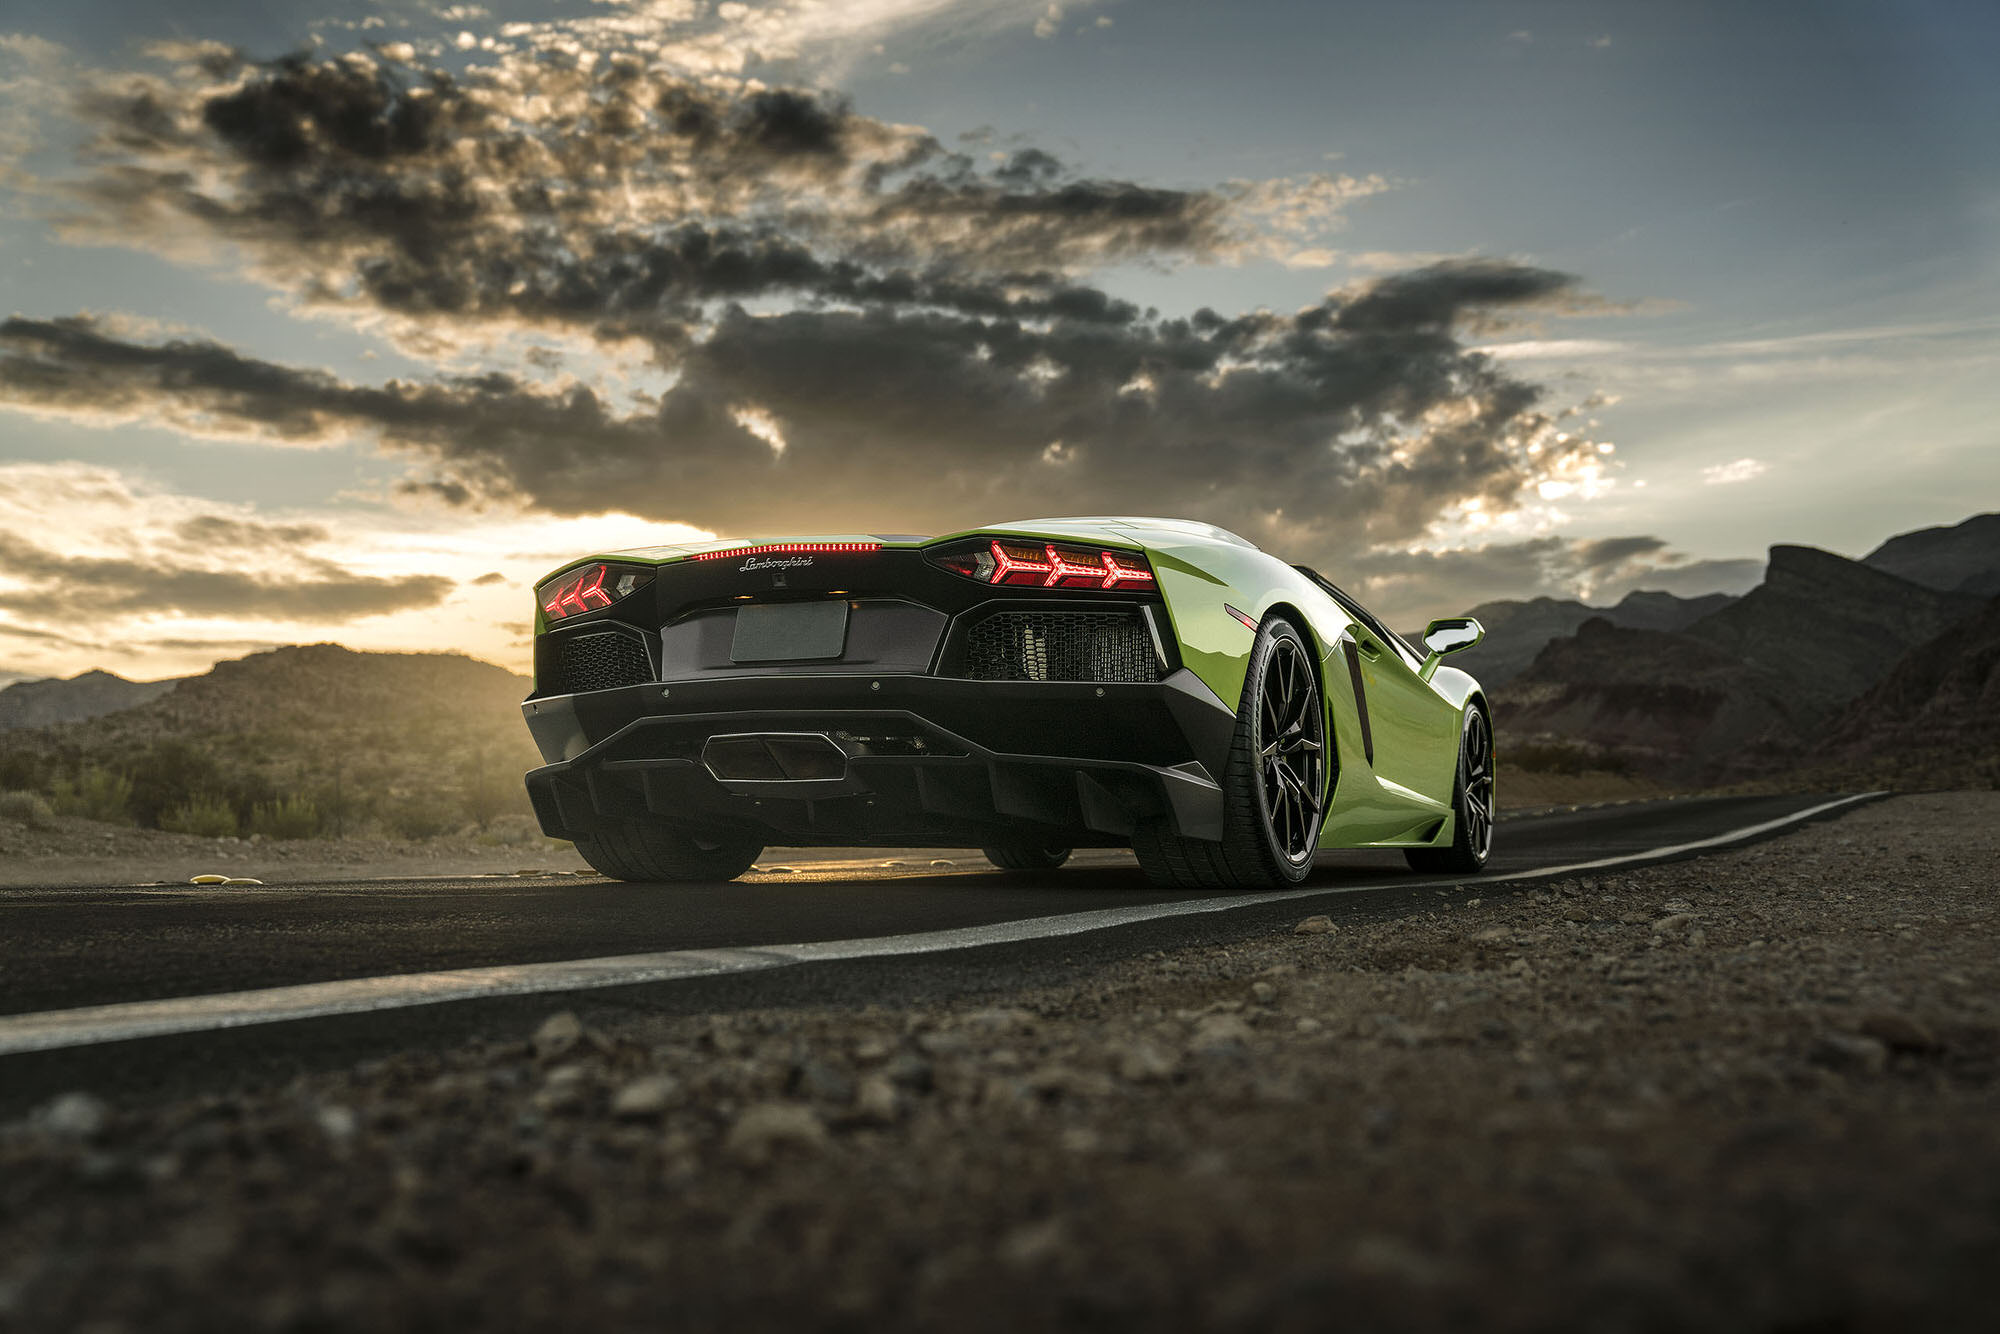 Lamborghini Aventador during sunset at Red Rock Canyon